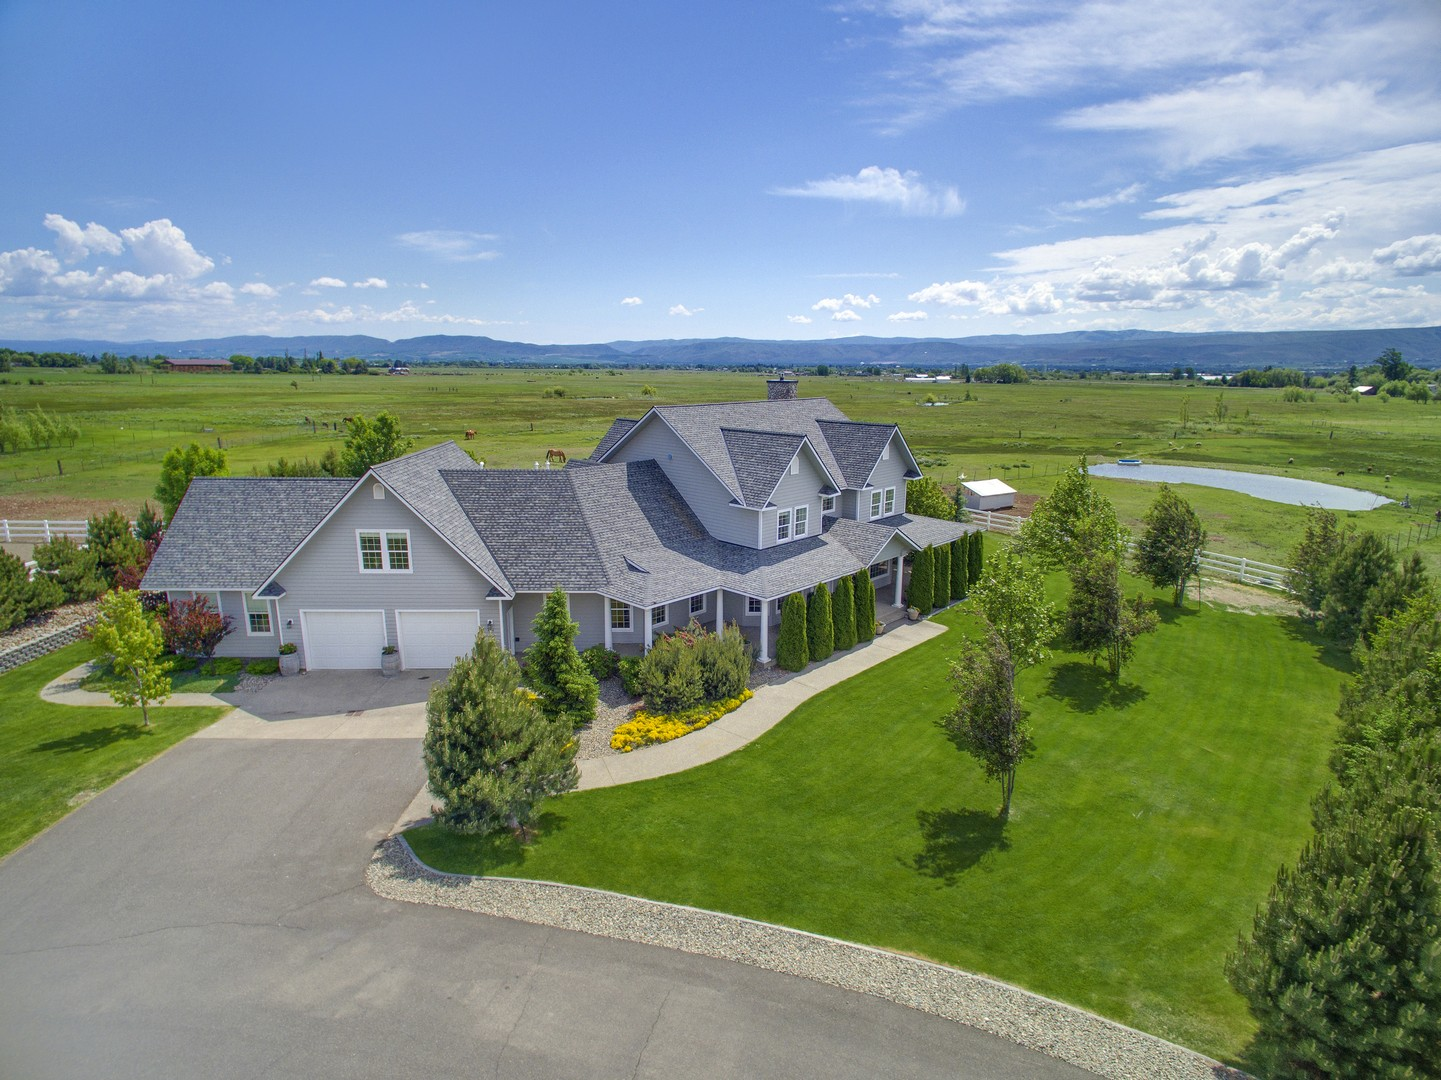 Moradia para Venda às Creek View Farm 444 Buckboard Lane Ellensburg, Washington, 98926 Estados Unidos